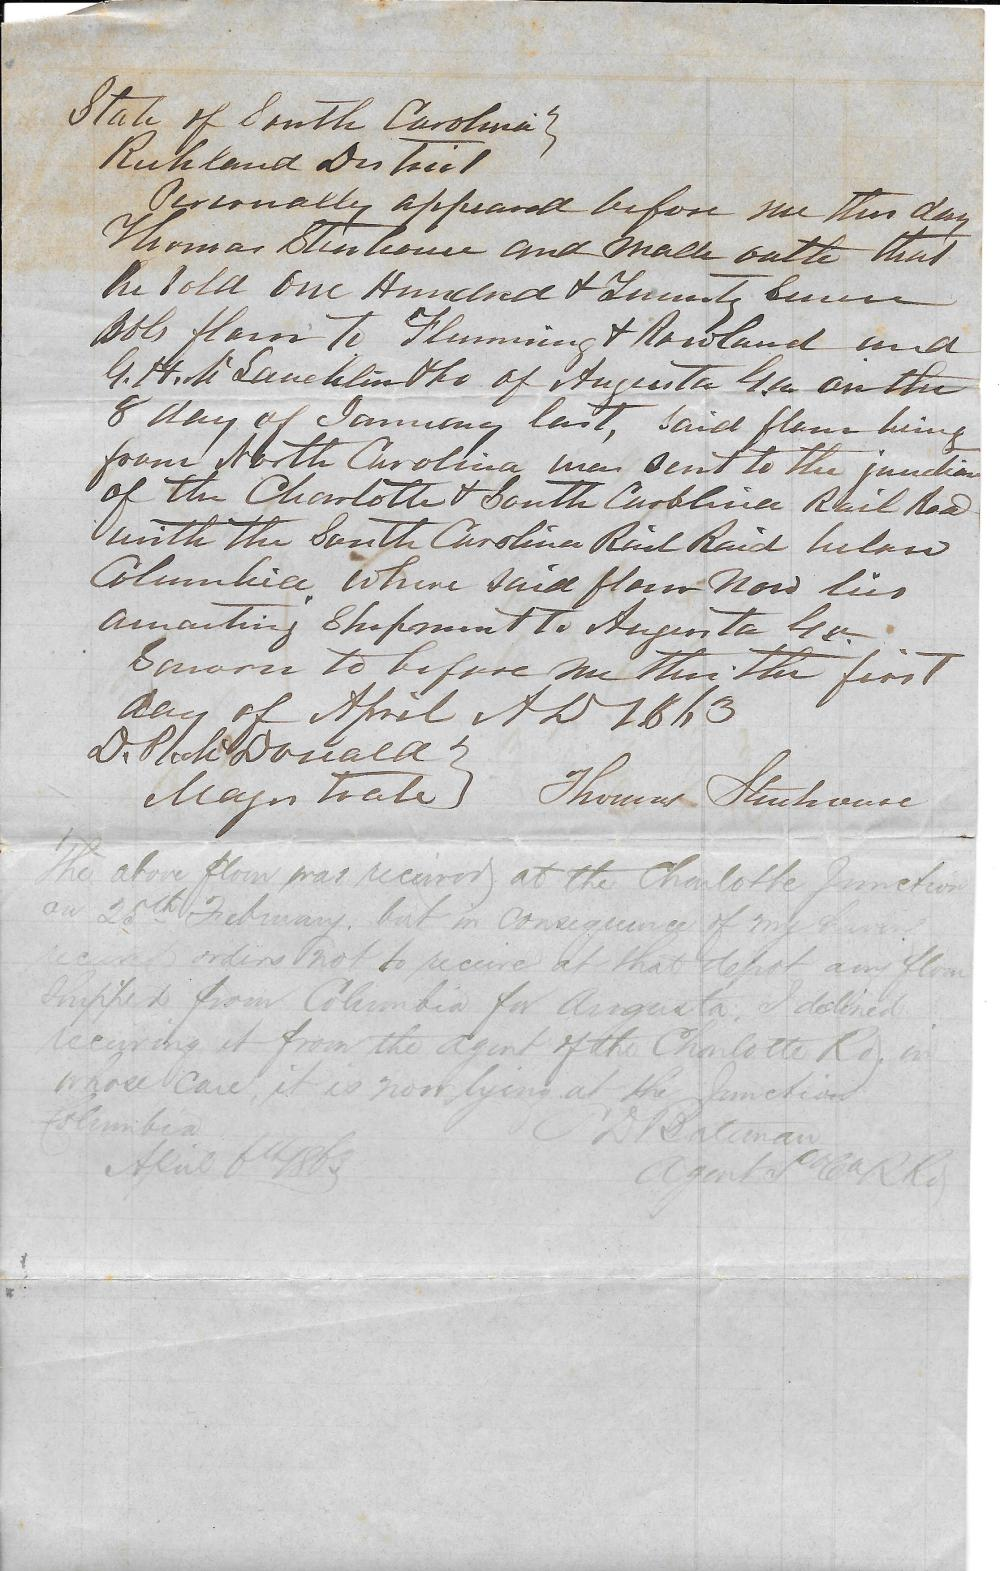 Delay of much needed supplies destined for Confederate troops, 1863 ALS